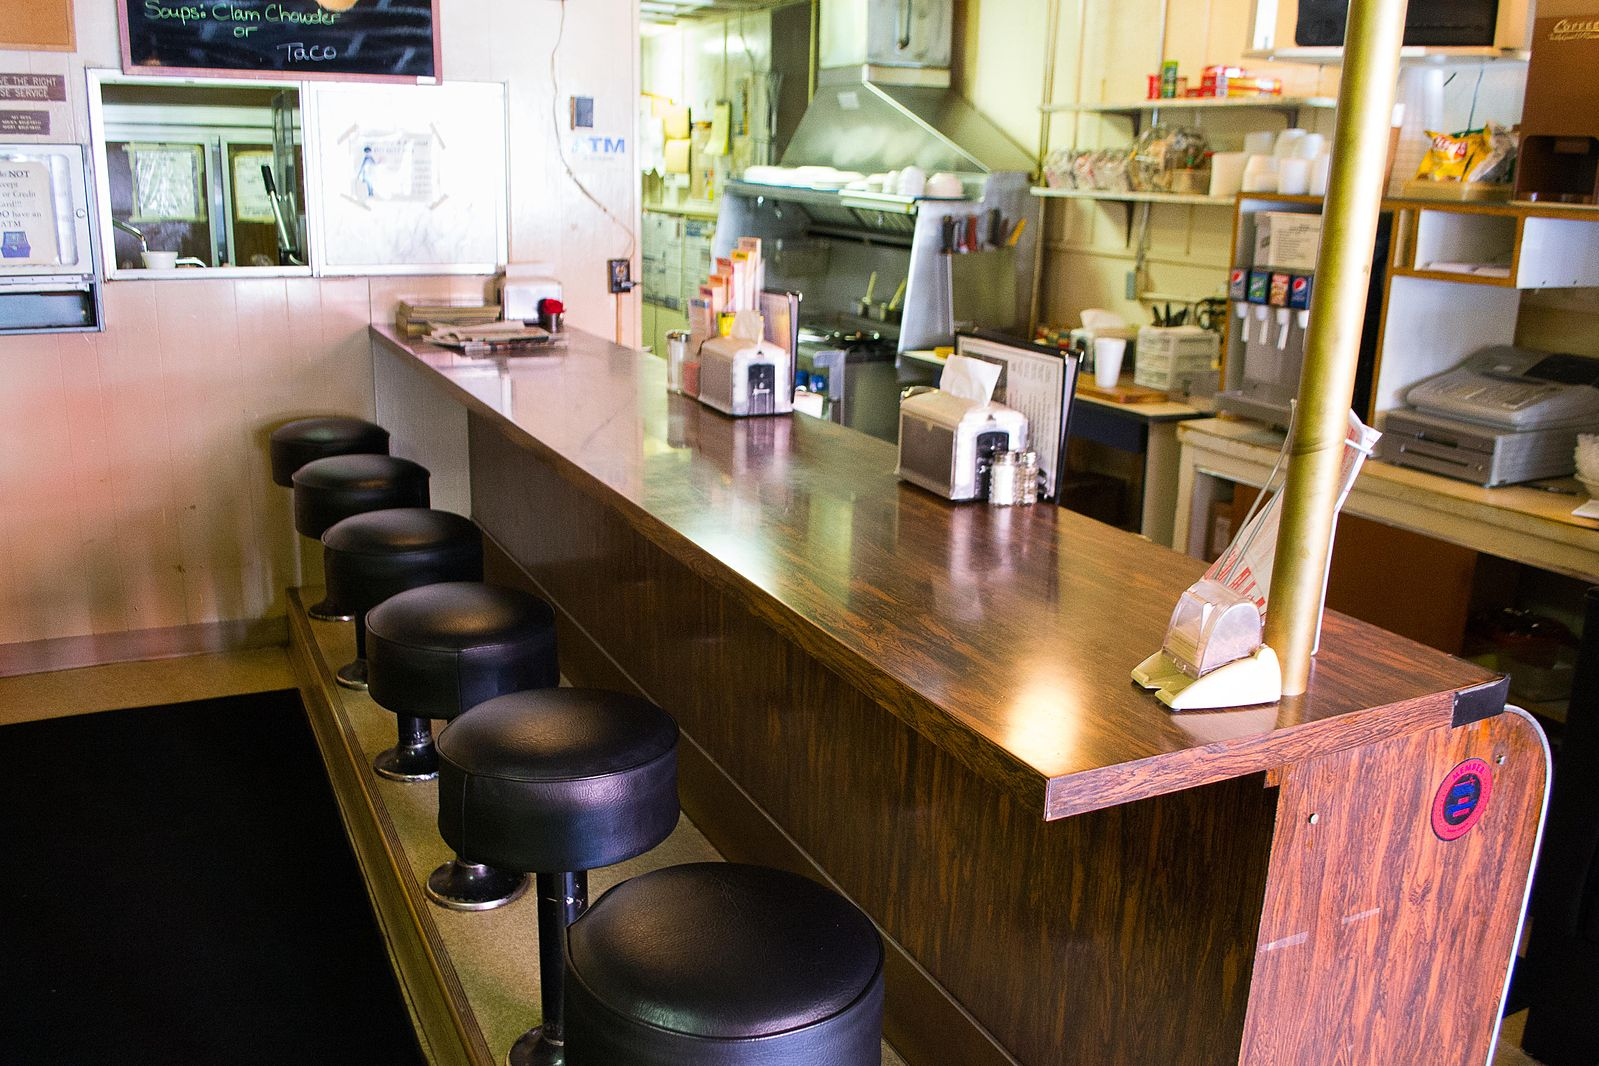 Difference Between Counter and Bar Stools